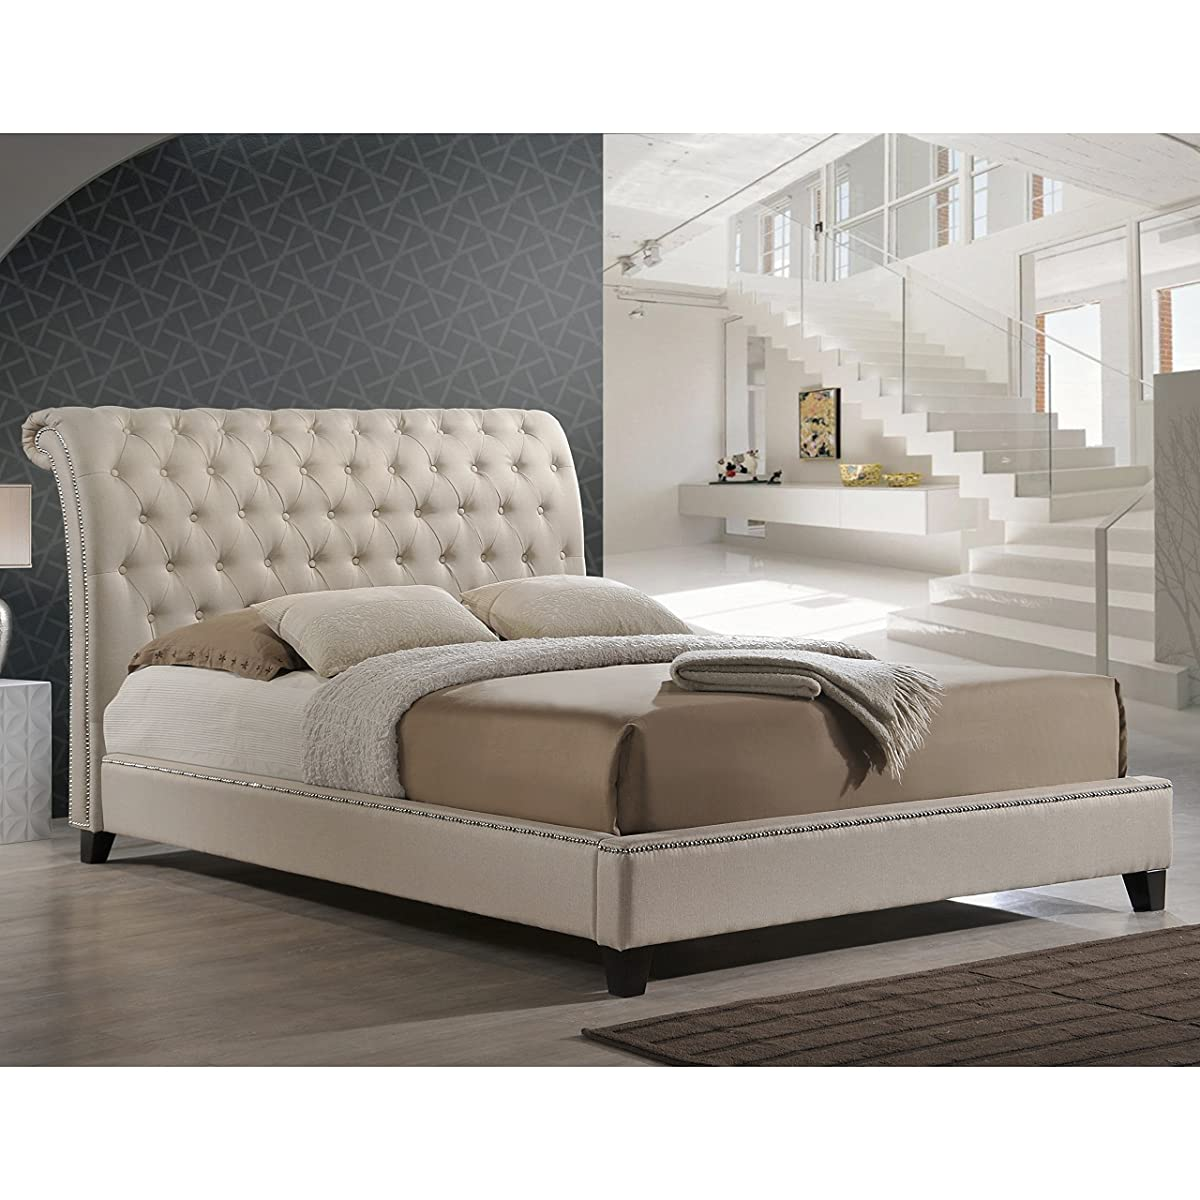 Baxton Studio Jazmin Tufted Modern Bed with Upholstered Headboard, Queen, Light Beige